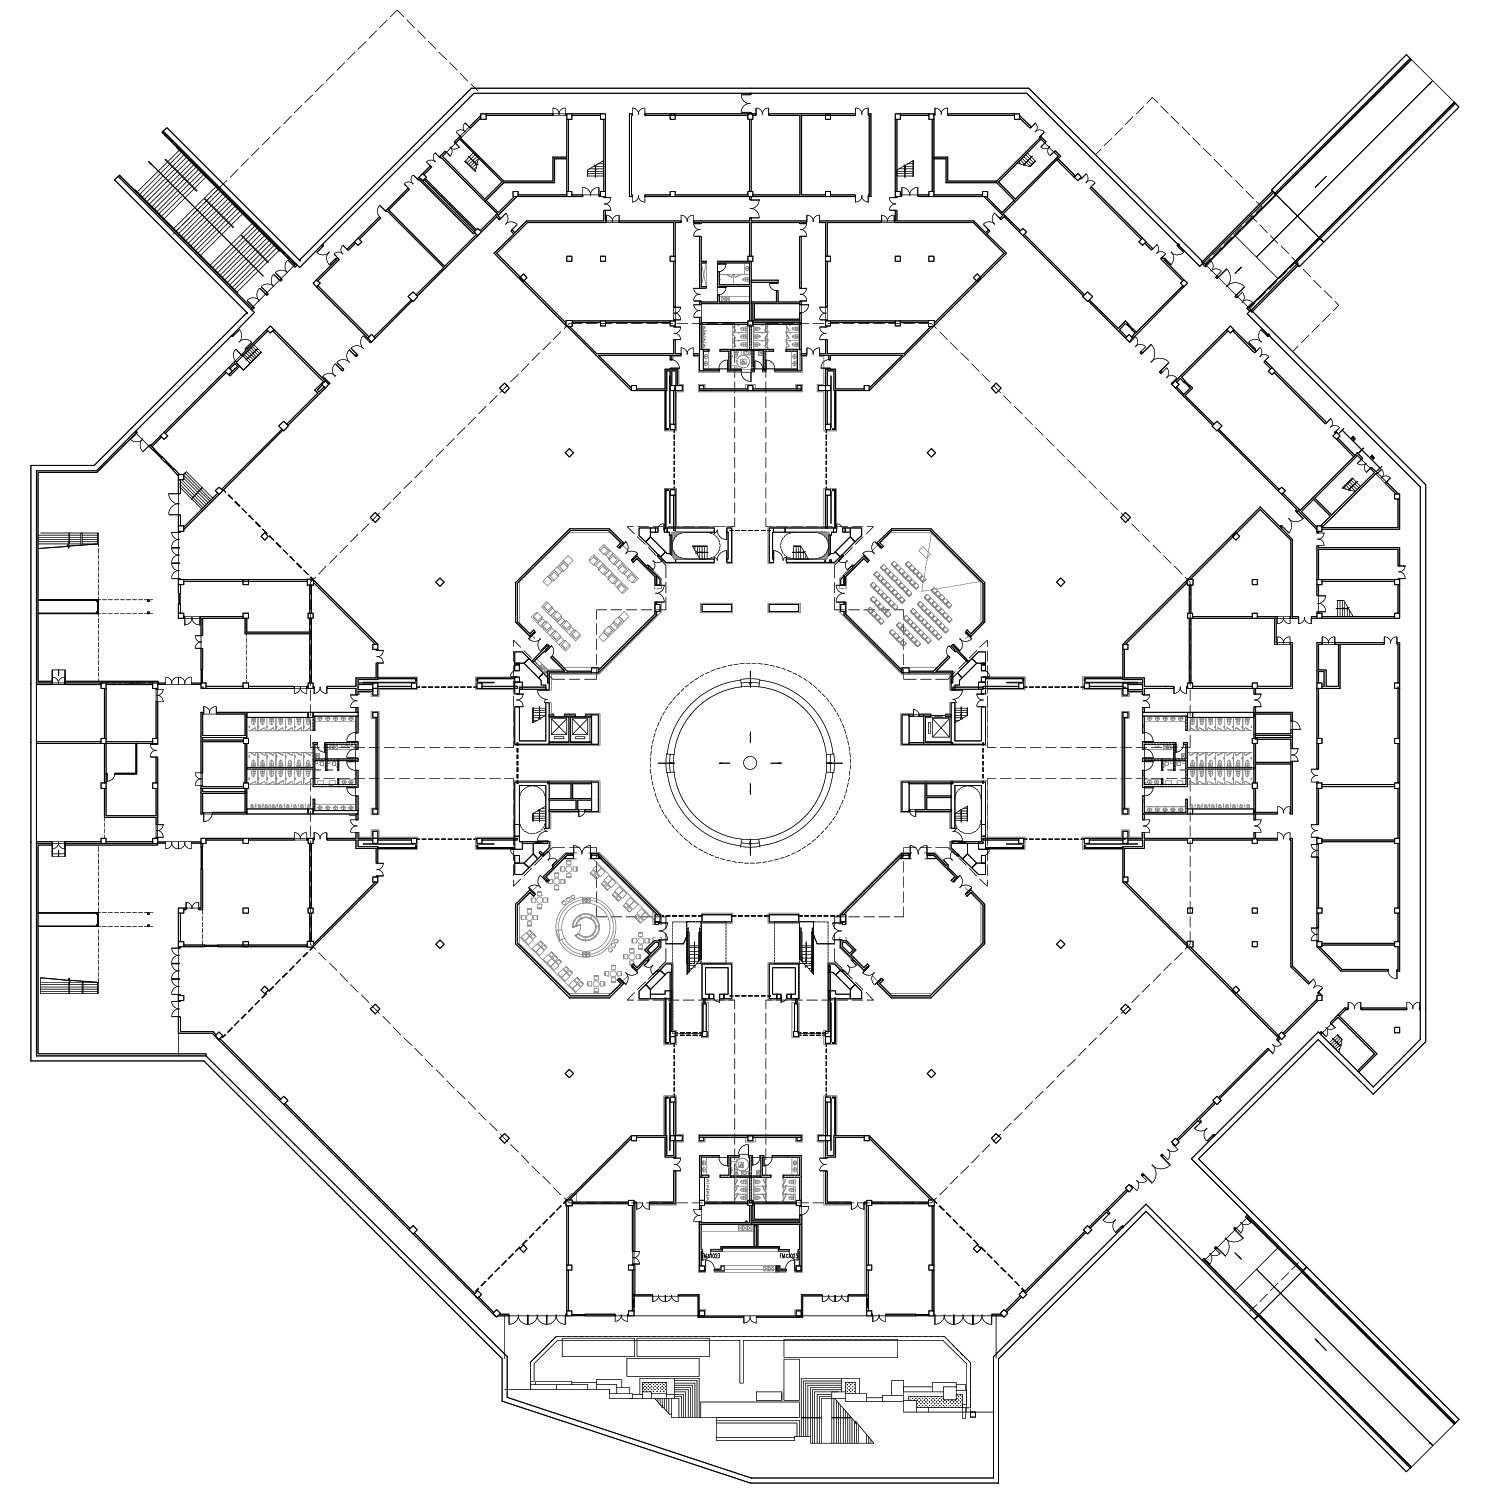 Underground Floor Plan The Architectural Design & Research Institute of Zhejiang University}